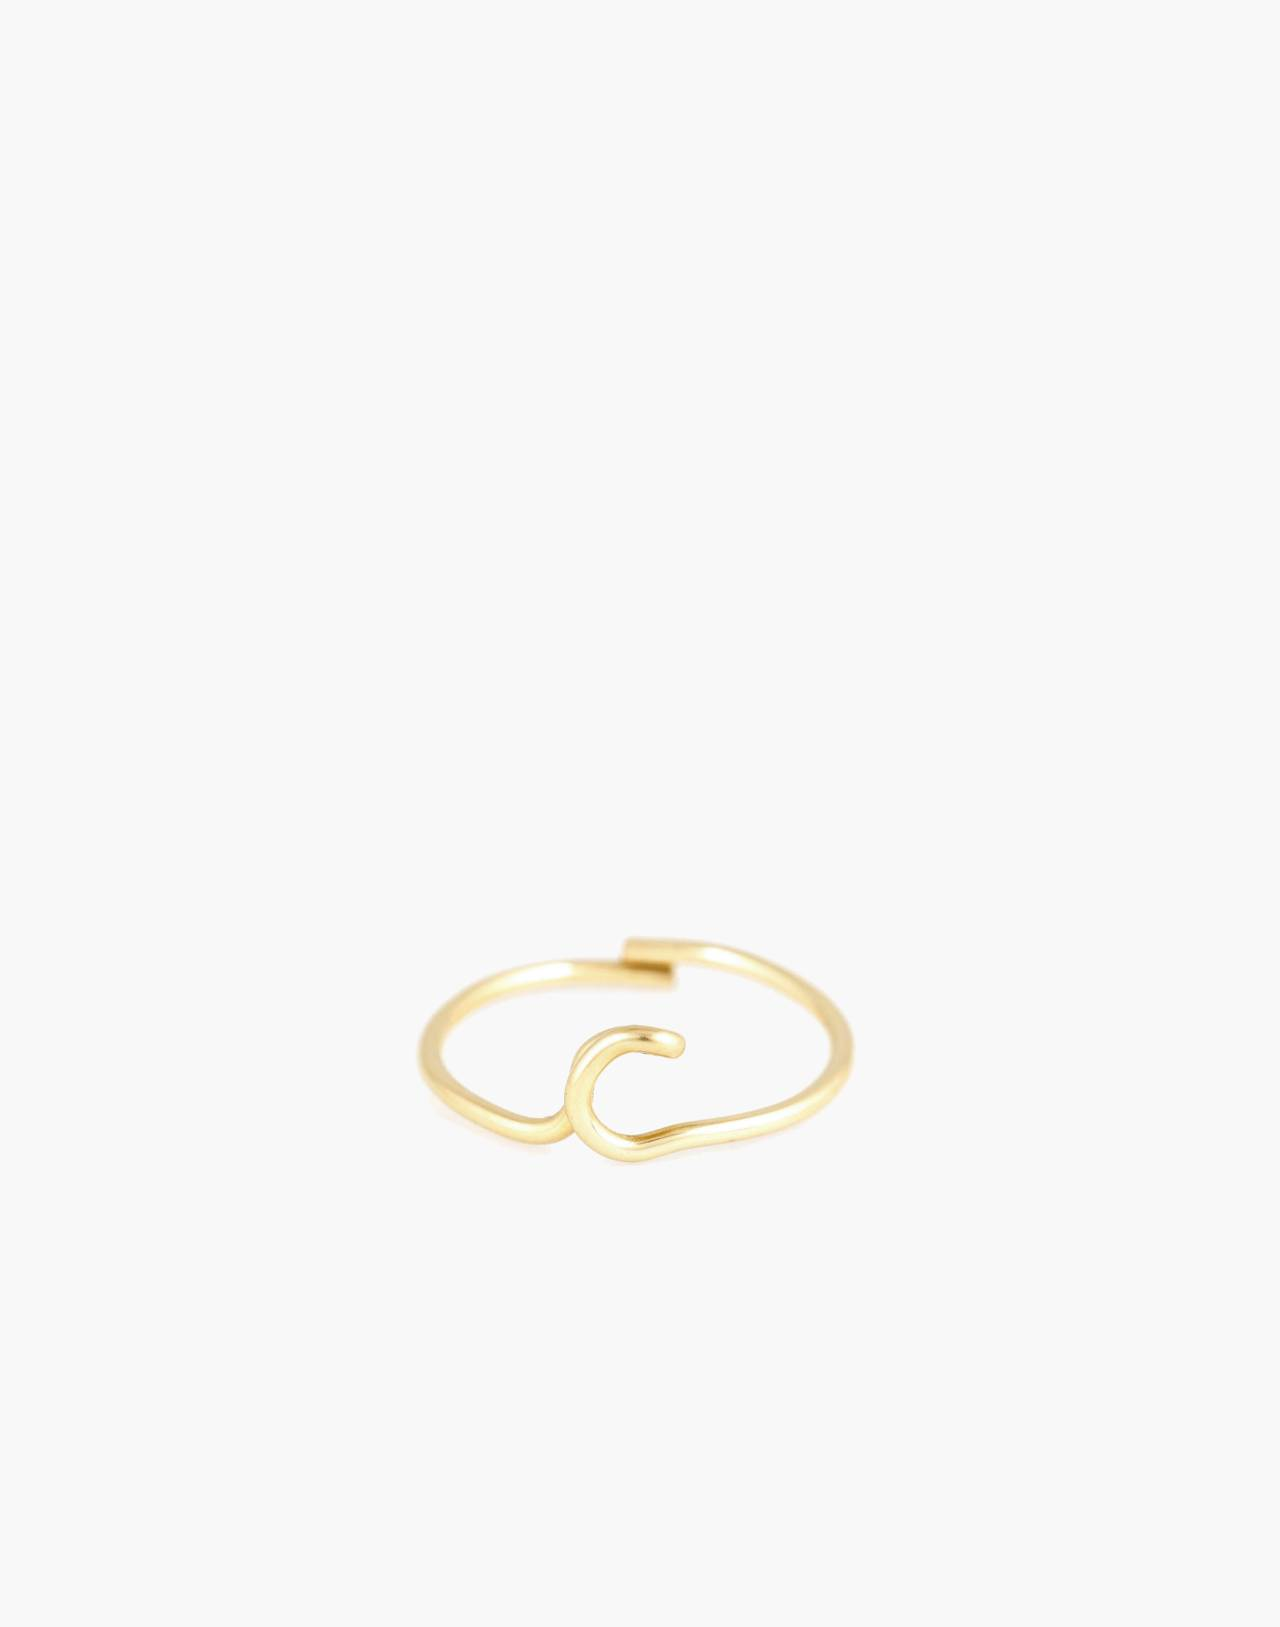 Atelier Paulin™ Poetic Letter Ring in letter c image 1